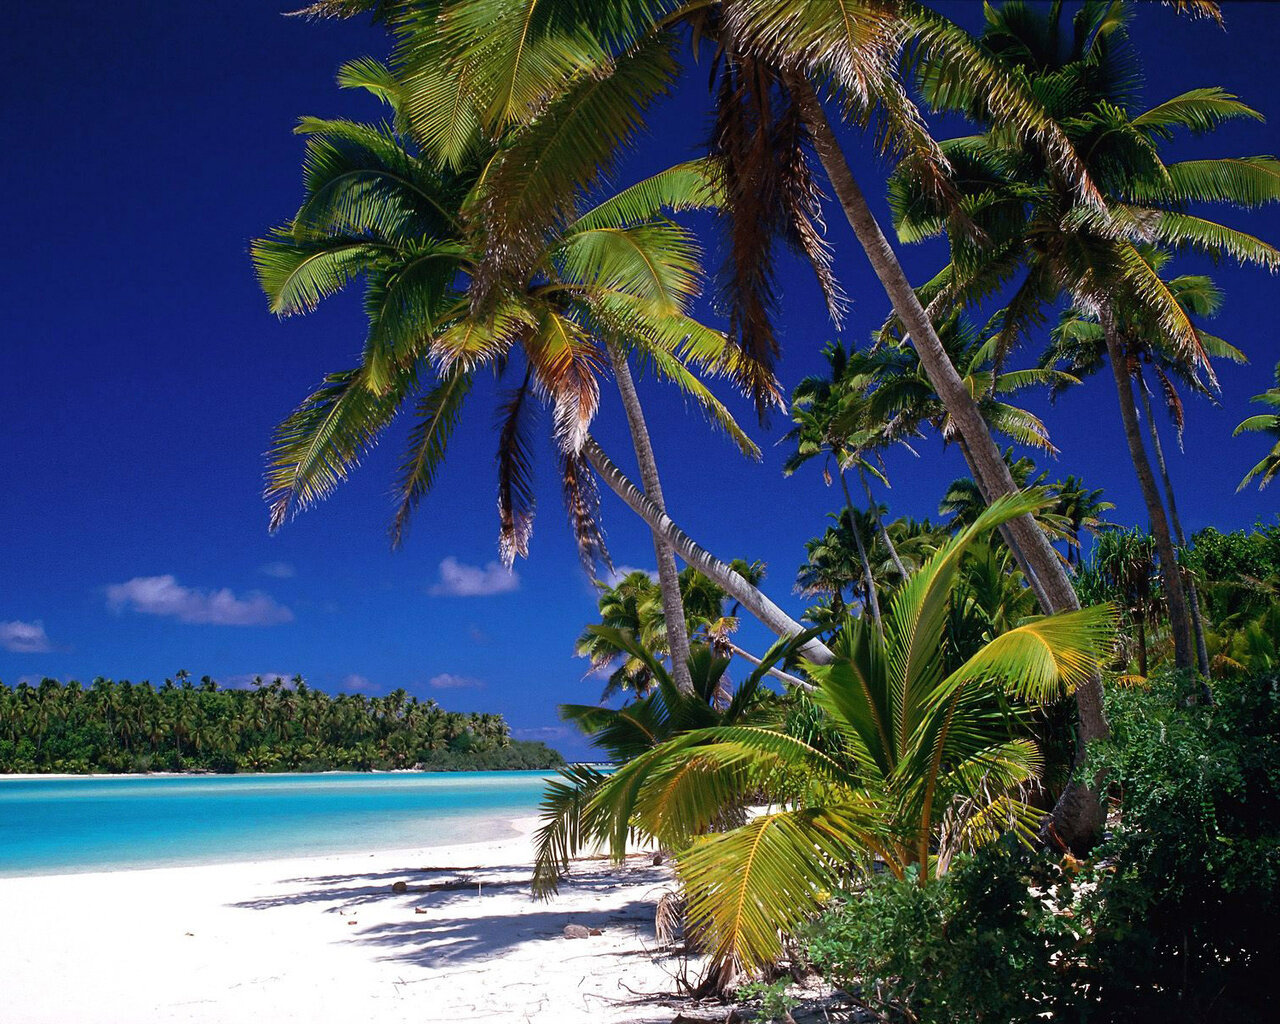 10 Most Popular Beautiful Beach Backgrounds Palm Trees: Paysage Exotique